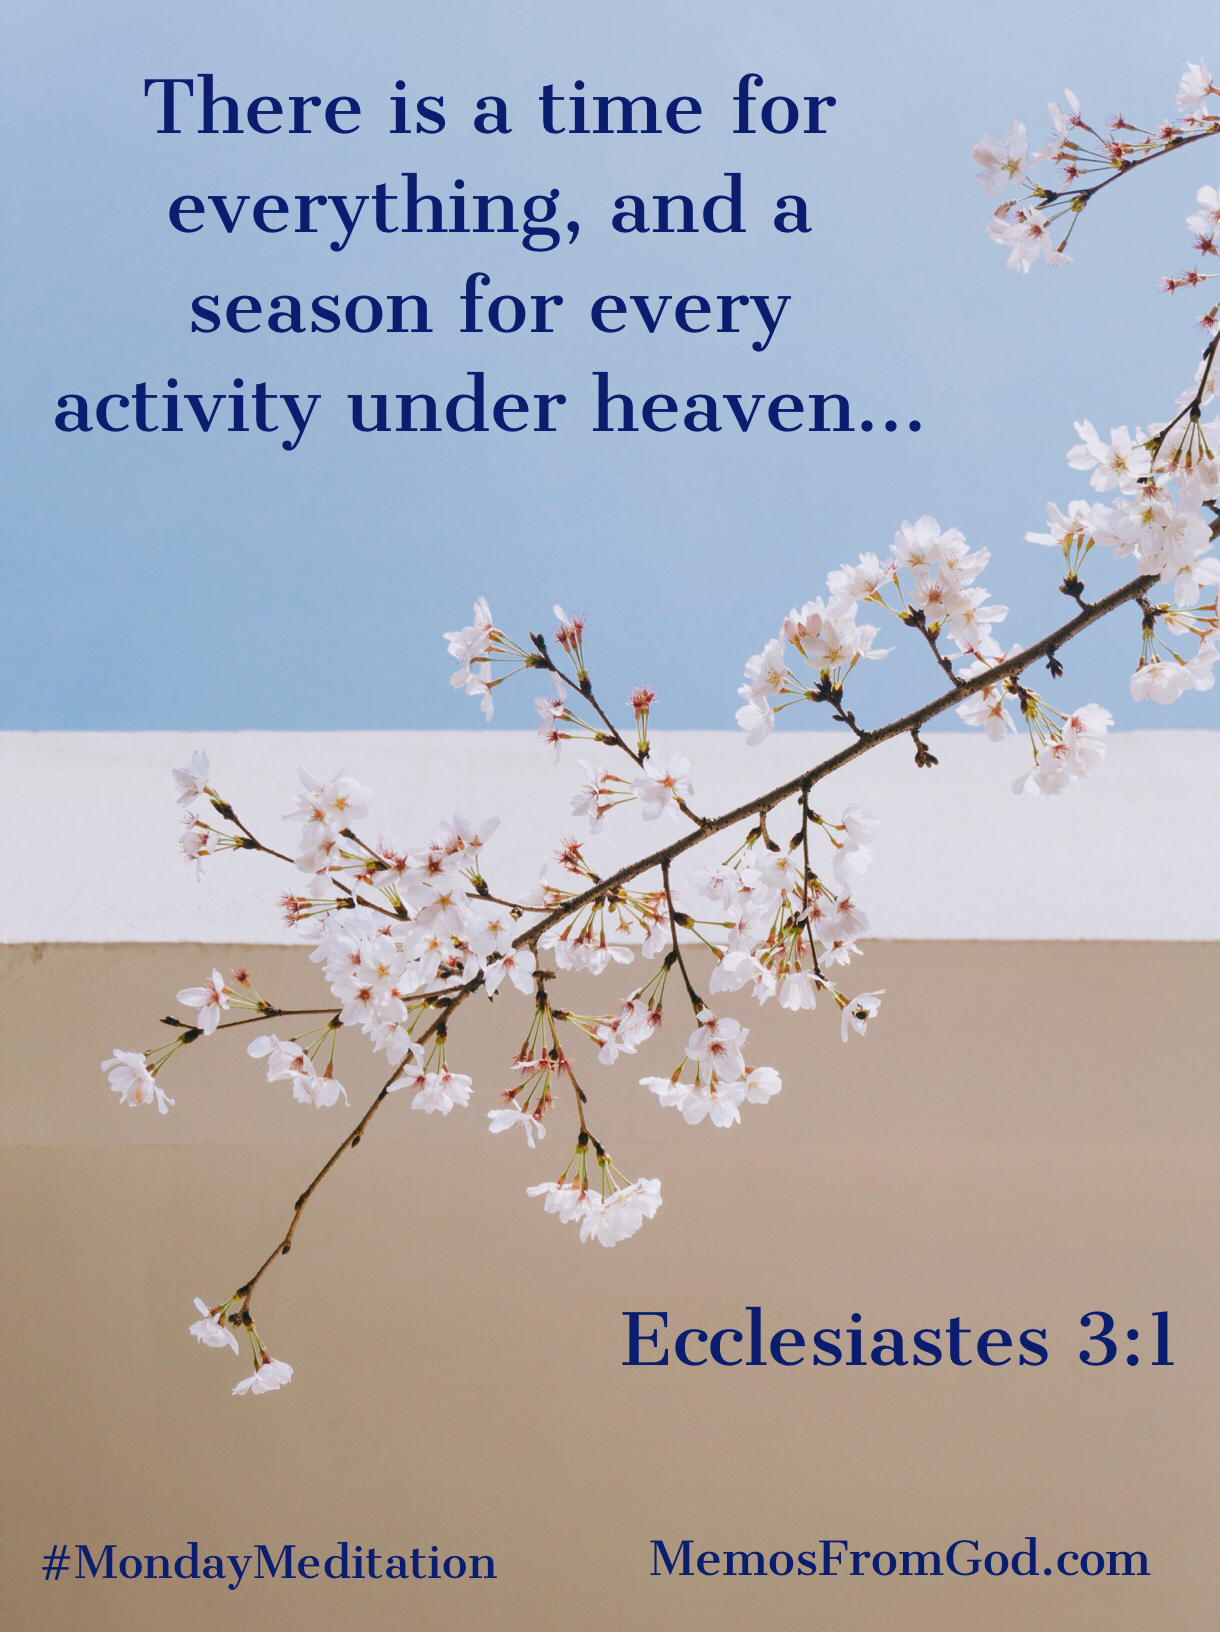 There is a time for everything, and a season for every activity under heaven... Ecclesiastes 3:1